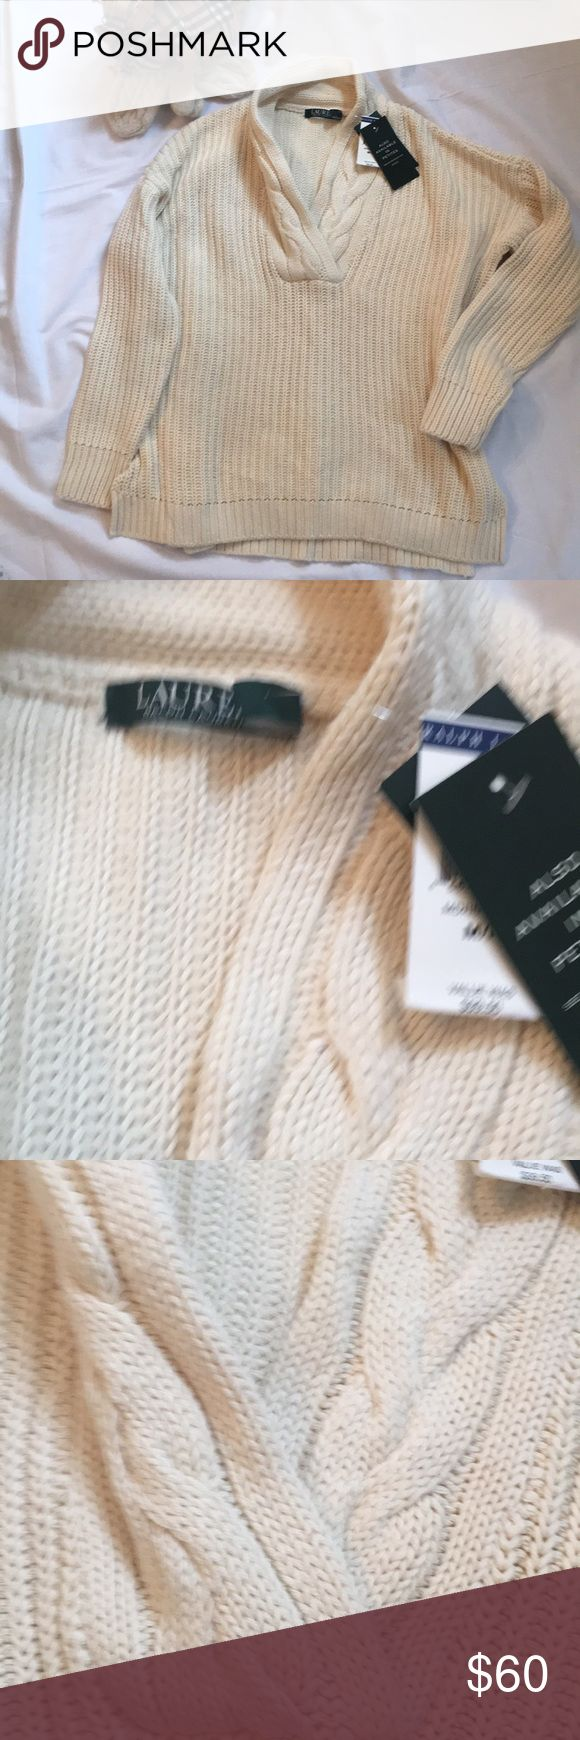 Ralph Lauren Lauren cotton Shaw sweater This is a great Ralph Lauren Lauren shawl ribbed cable sweater.  New with tags.  100% cotton. Lauren Ralph Lauren Sweaters